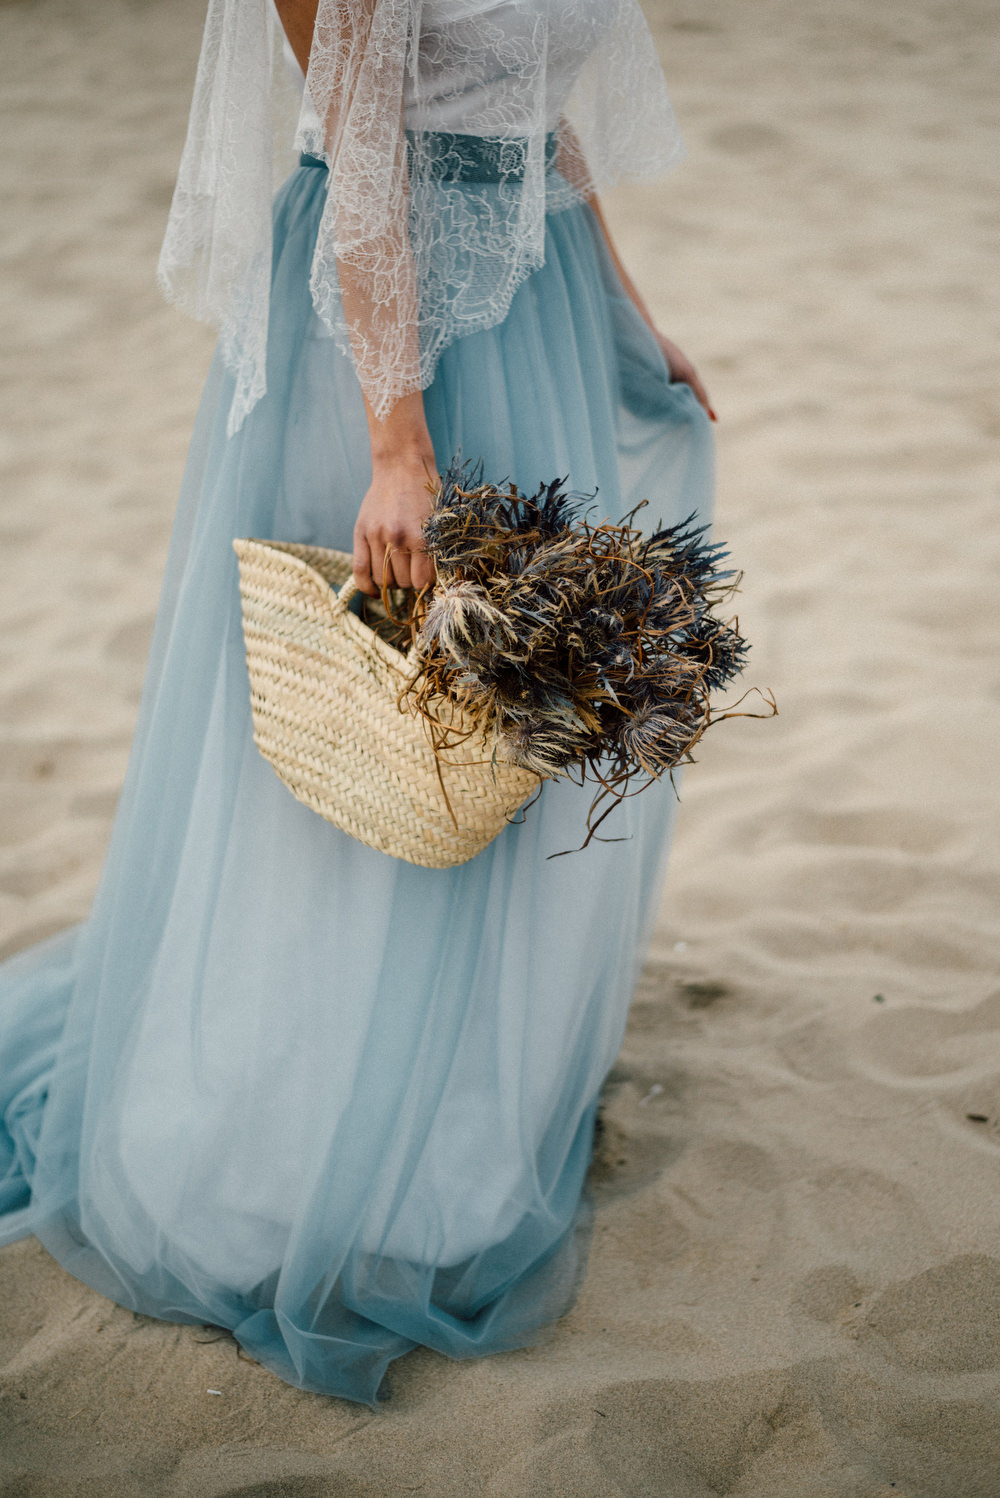 Outdoor Wild Nature Destination Spain Europe Coastal Styled Shoot Bride Blue Gown Lace Sea Holly   Blue Ibiza Elopement Ideas and Surprise Proposal Serena Genovese Photography